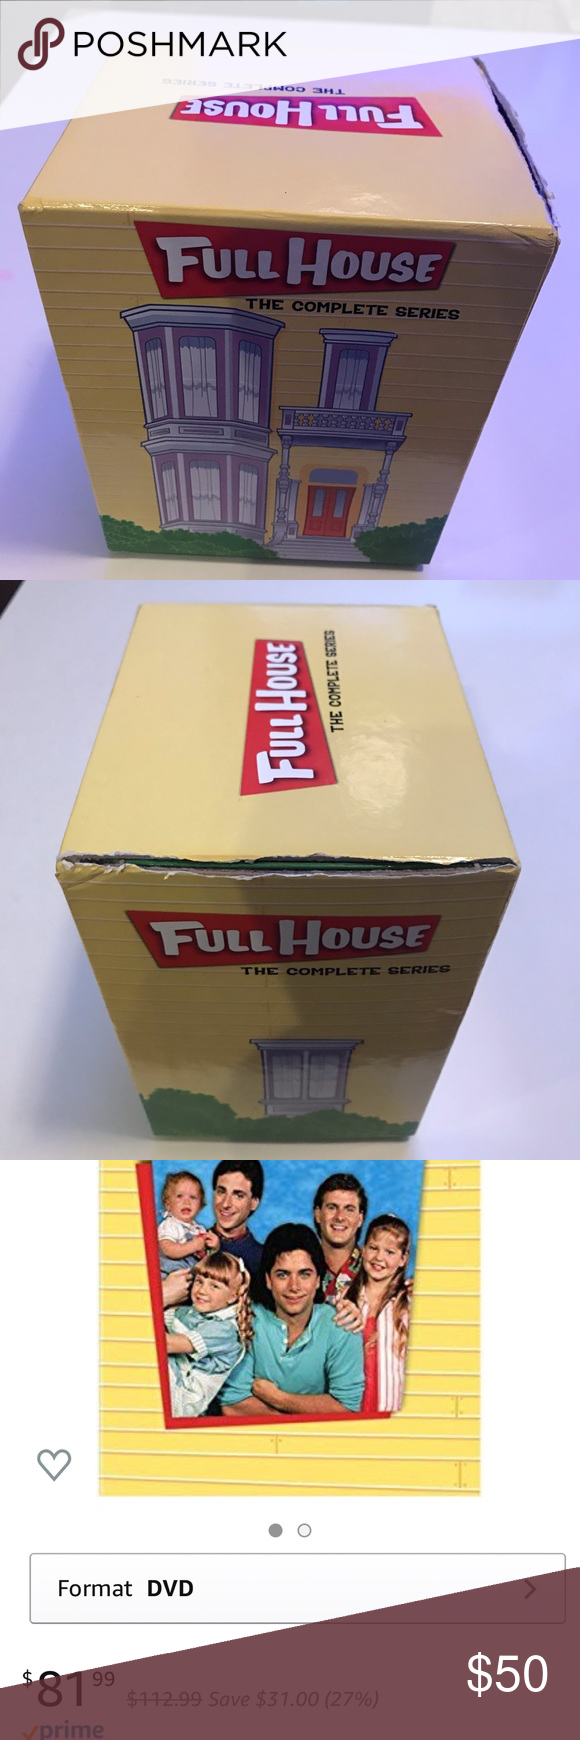 Full Housecomplete Series Collection Collection Box Full House Complete Series Full House